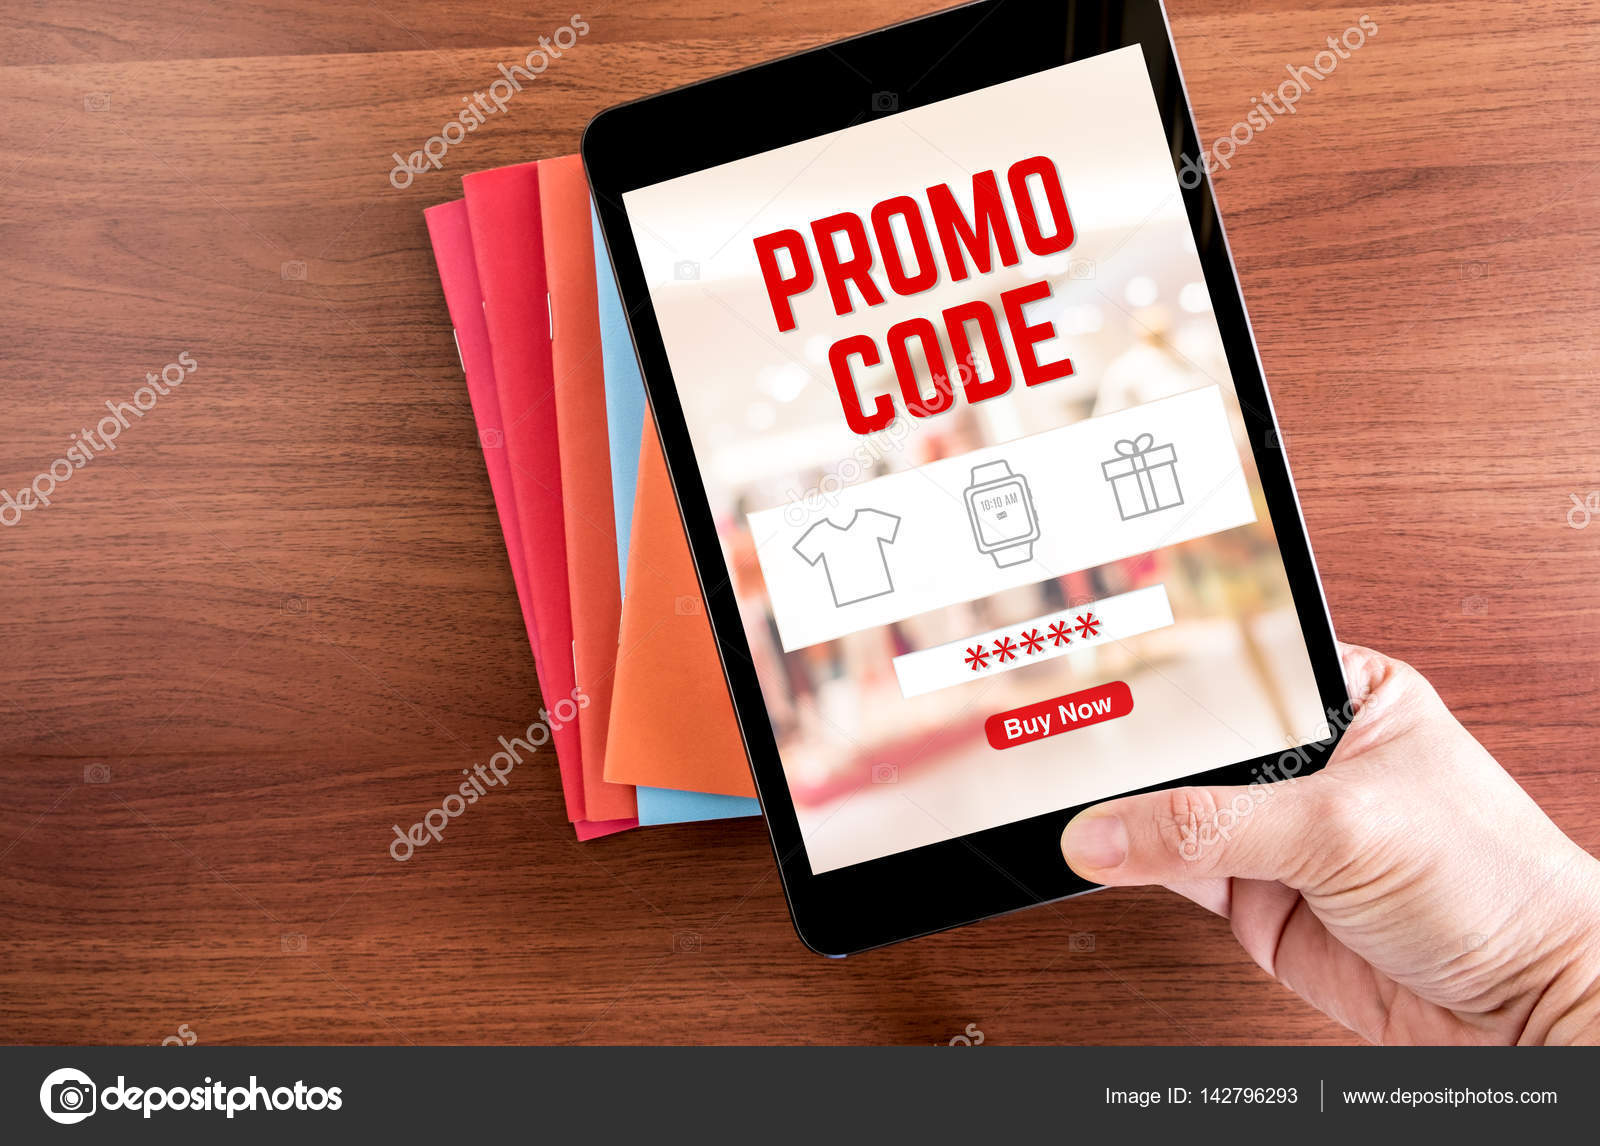 Top View Of Hand Holding Tablet With Promo Code Word Blur Store Background Over Color Notebook On Wooden Table TopOnline Shopping Business Concept